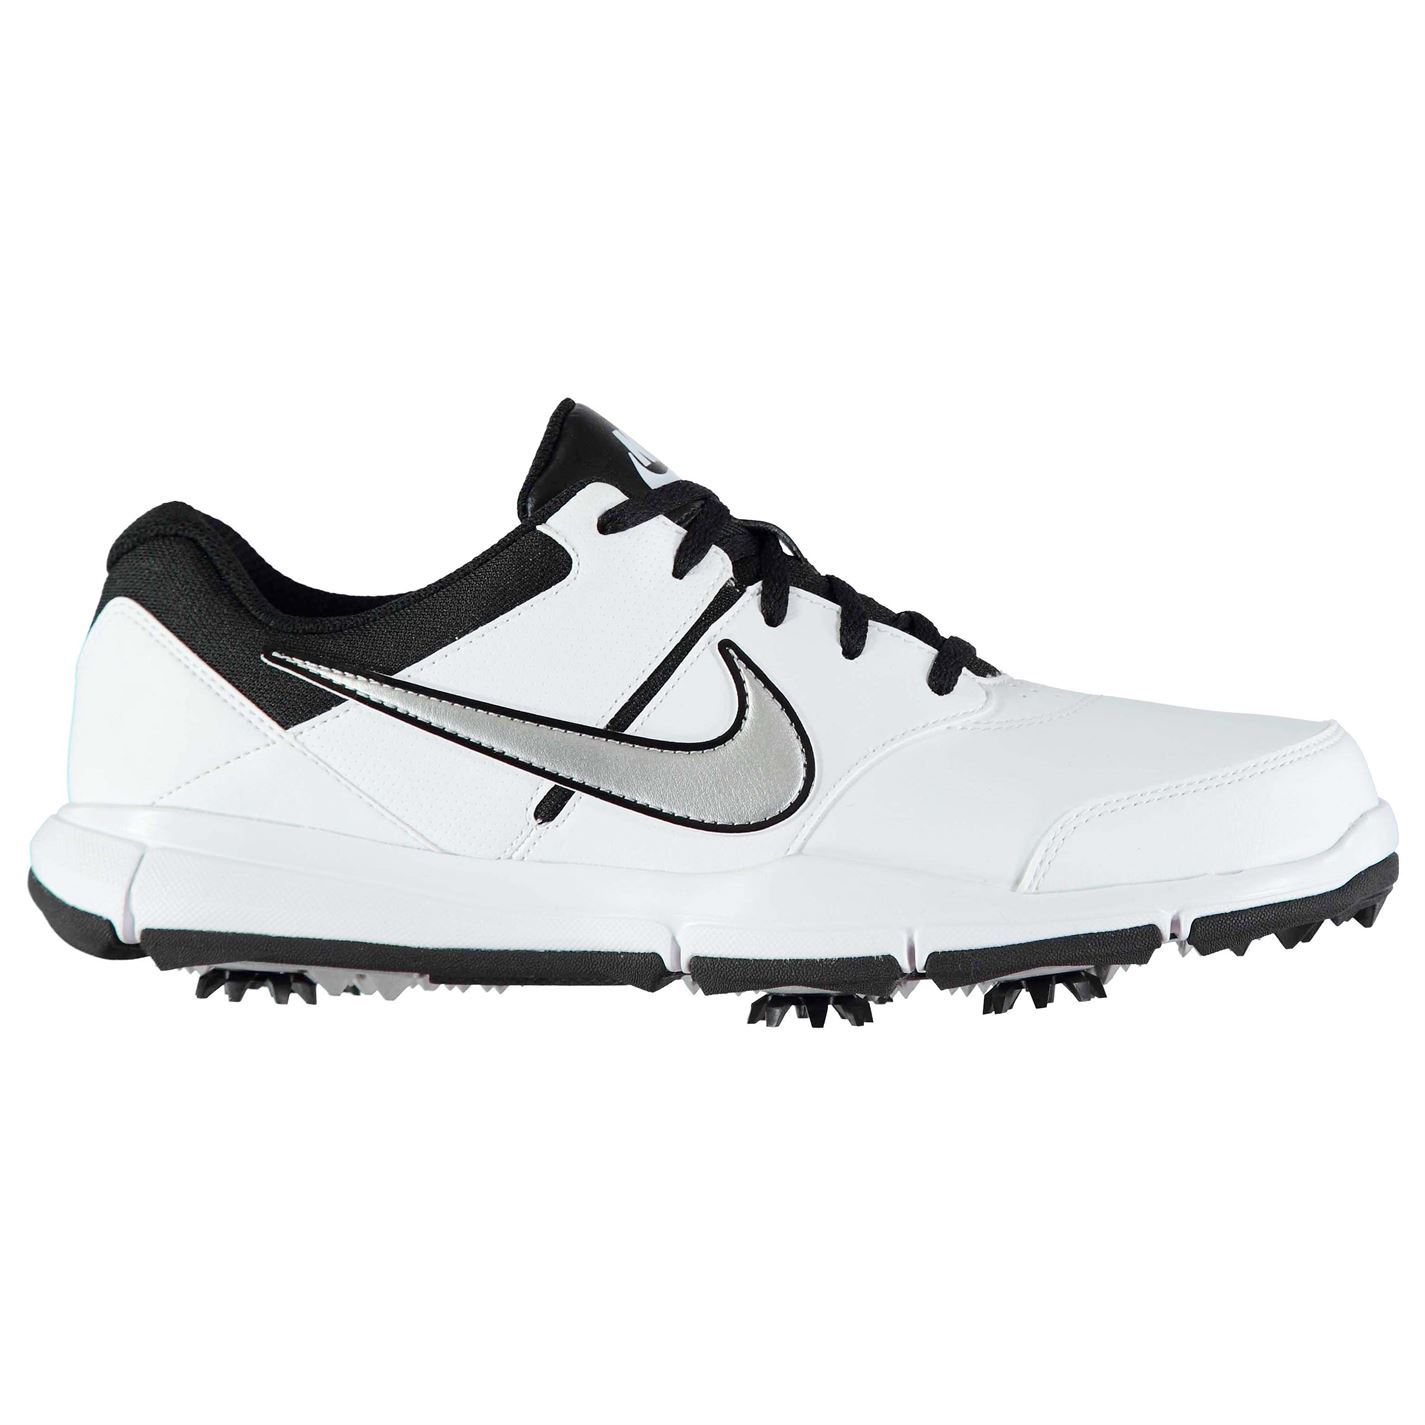 Nike-Durasport-4-Spiked-Golf-Shoes-Mens-Spikes-Footwear thumbnail 18